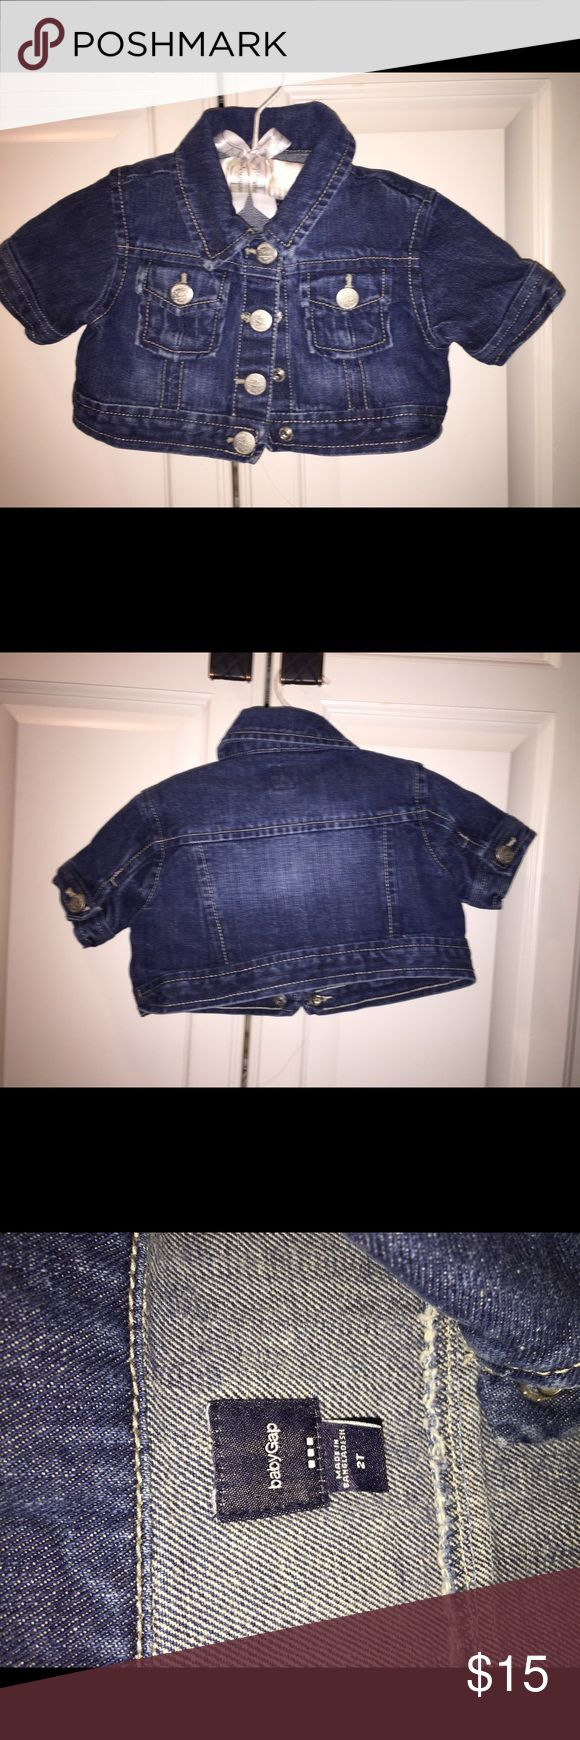 BabyGap Gap 2t denim jacket short sleeve blue It is used but in good condition.  It is a great jacket for any dress.  Loved it on my daughter. Size 2t. GAP Jackets & Coats Jean Jackets